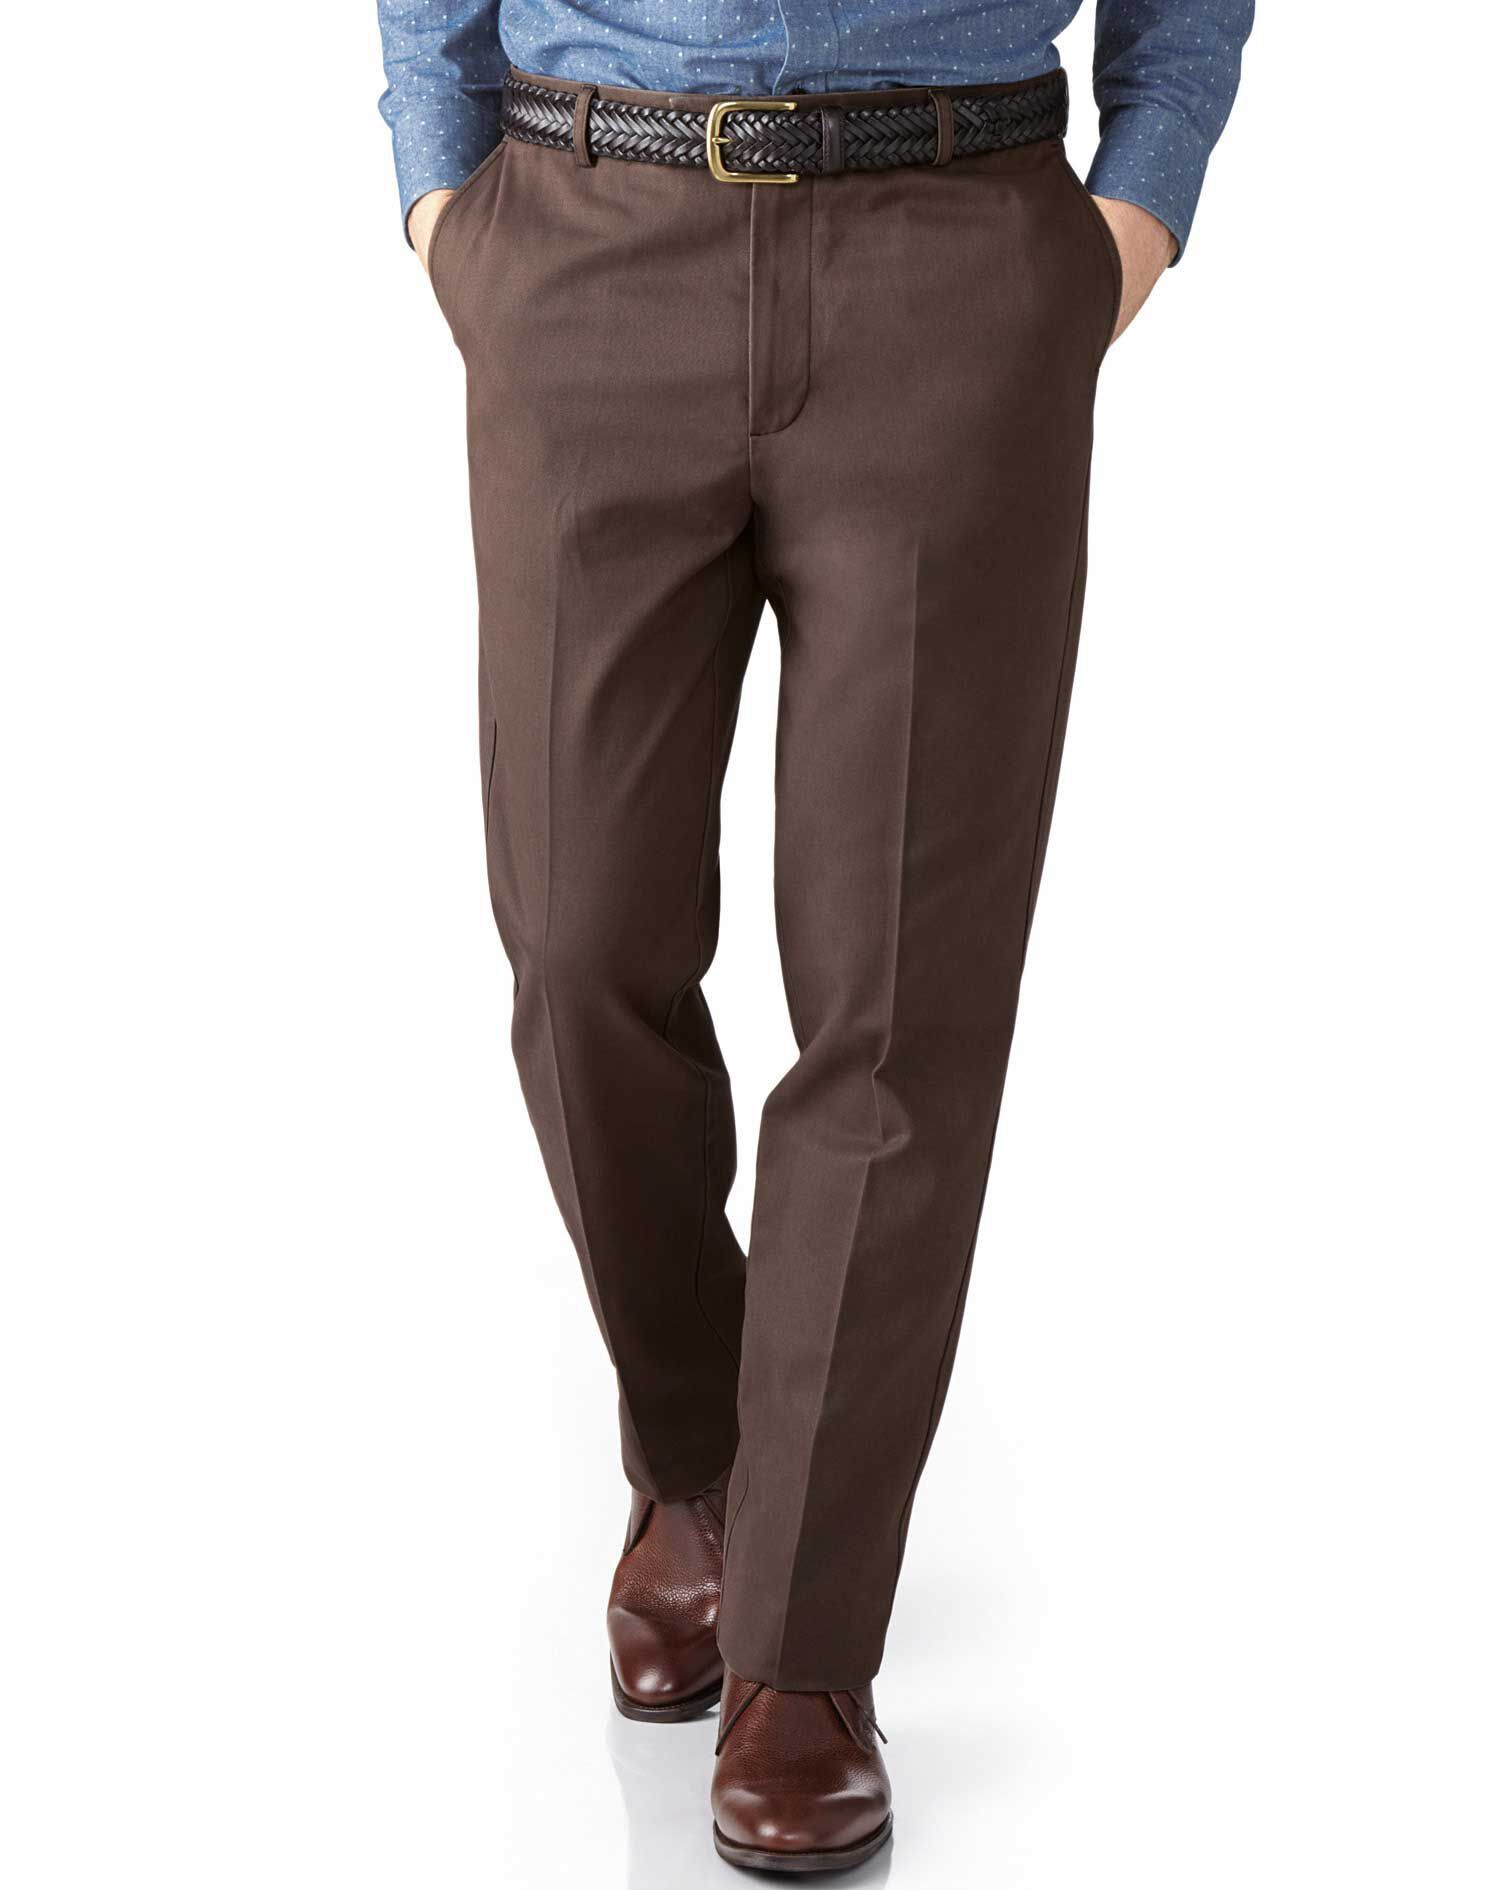 Dark Brown Extra Slim Fit Flat Front Non-Iron Cotton Chino Trousers Size W30 L34 by Charles Tyrwhitt